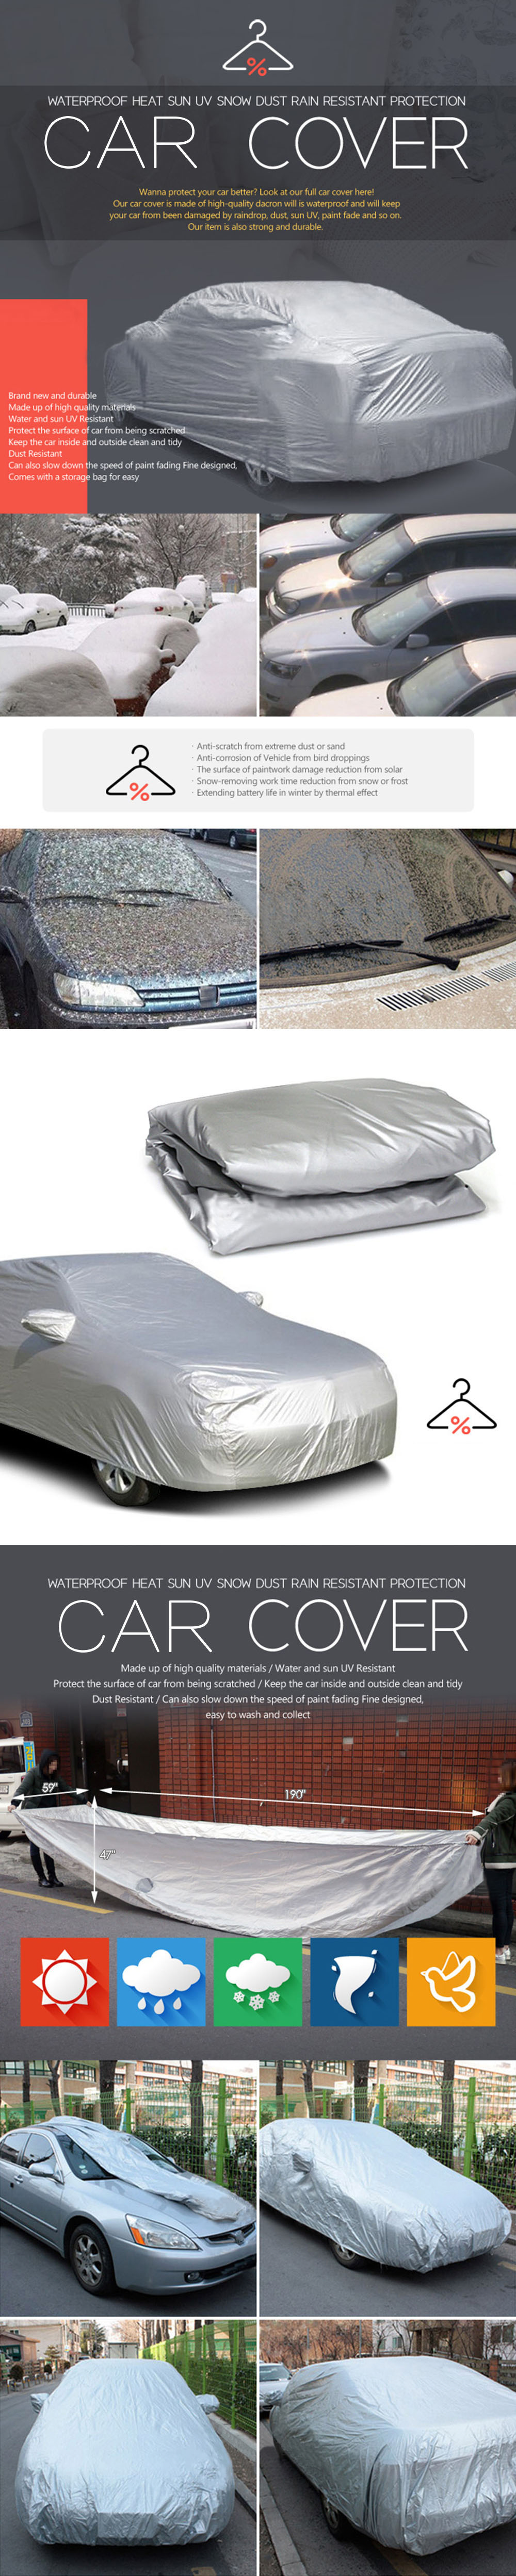 Autocraft Car Cover